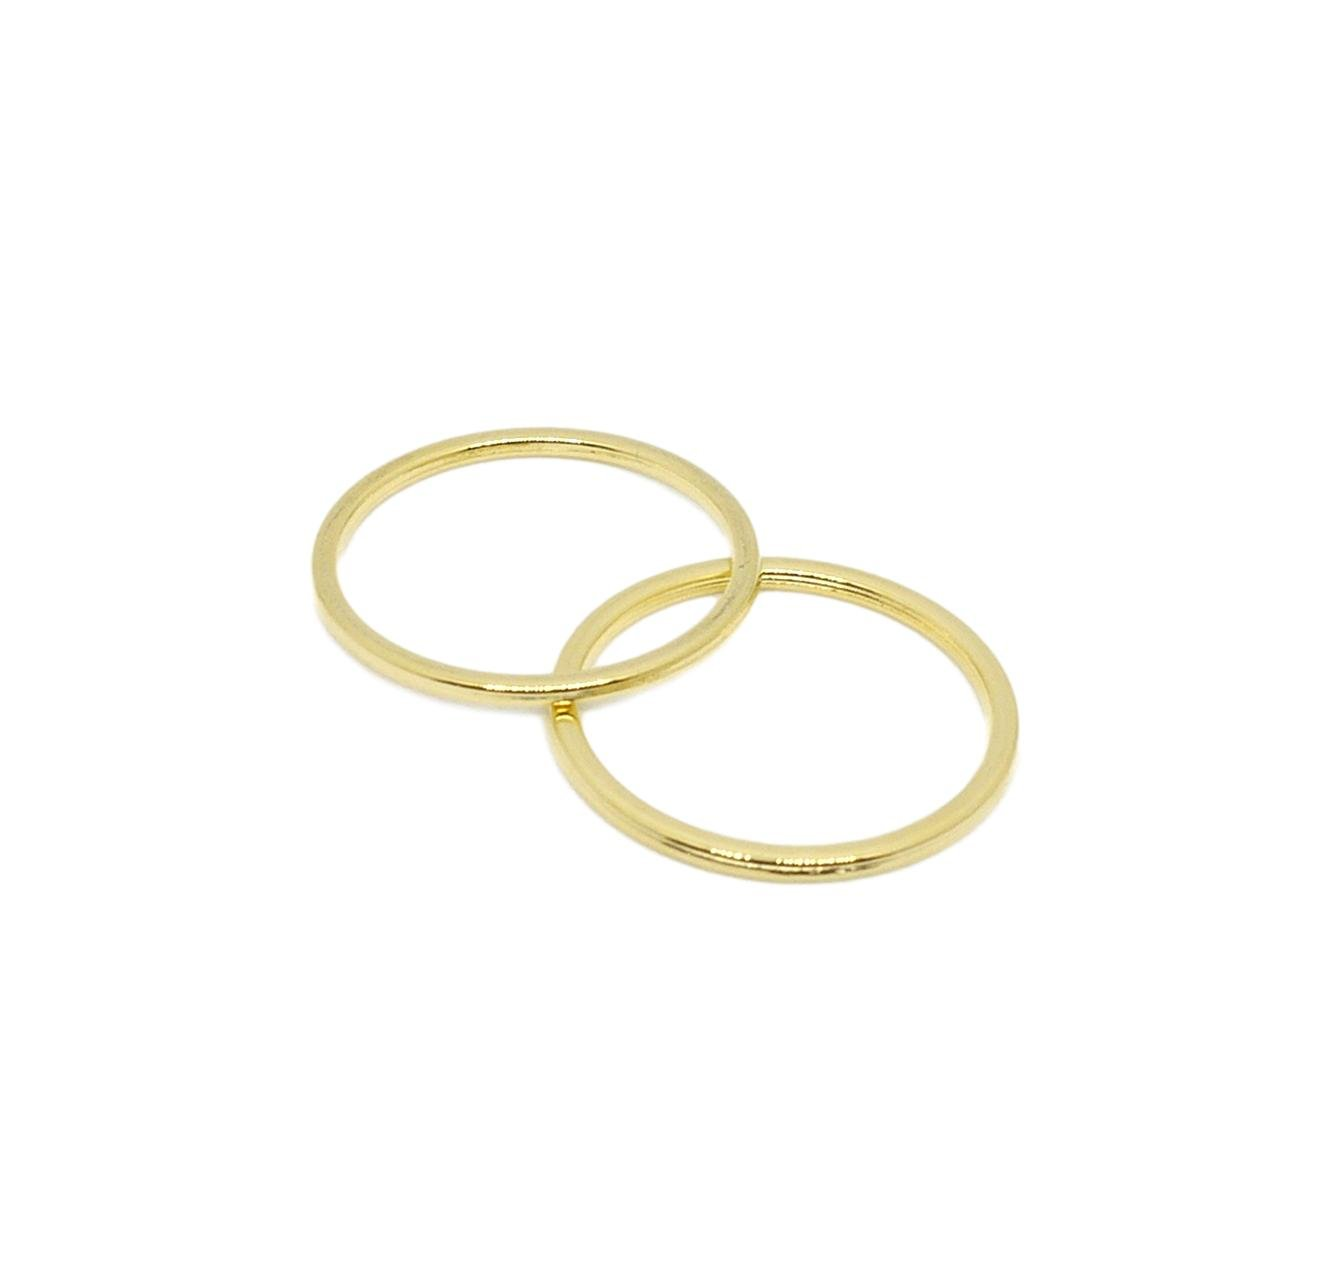 Porcelynne Gold Metal Alloy Replacement Bra Strap Ring - 1'' (25mm) Opening - 100 Pairs (200 Pieces) by Porcelynne